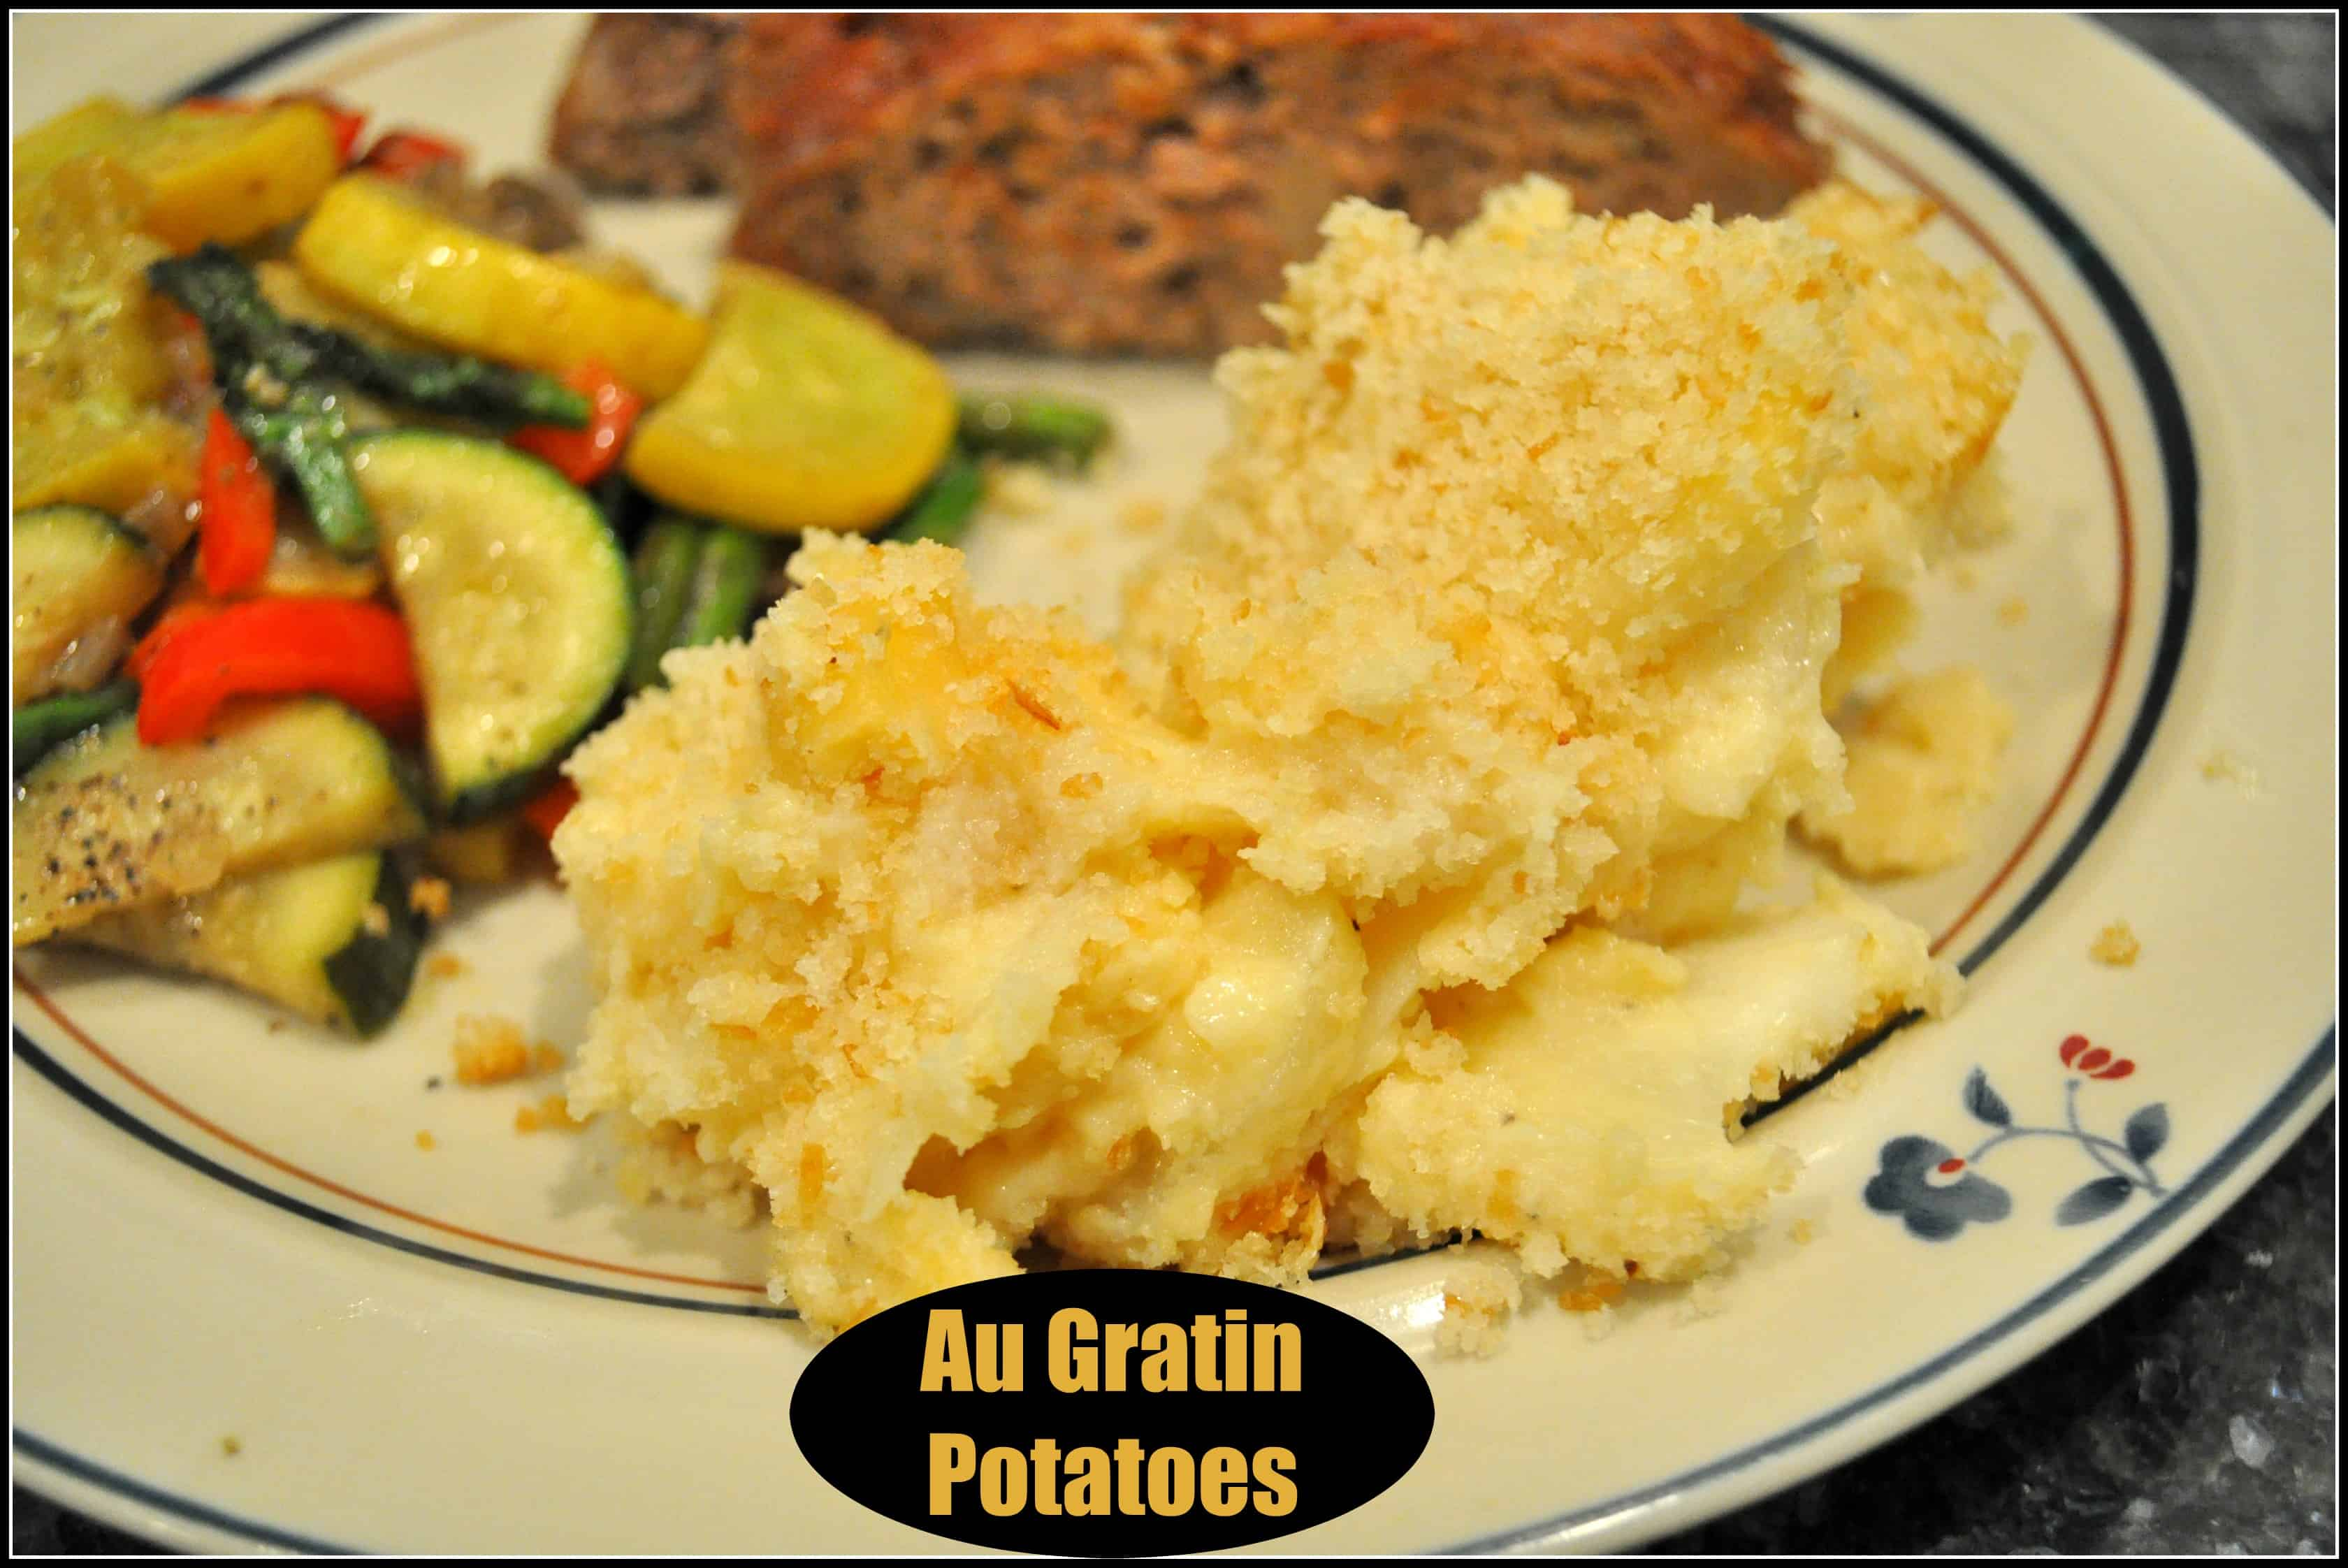 Au Gratin Potatoes are a comforting classic side dish, with thinly sliced potatoes covered in a homemade cheese sauce, then baked until golden brown and bubbly!